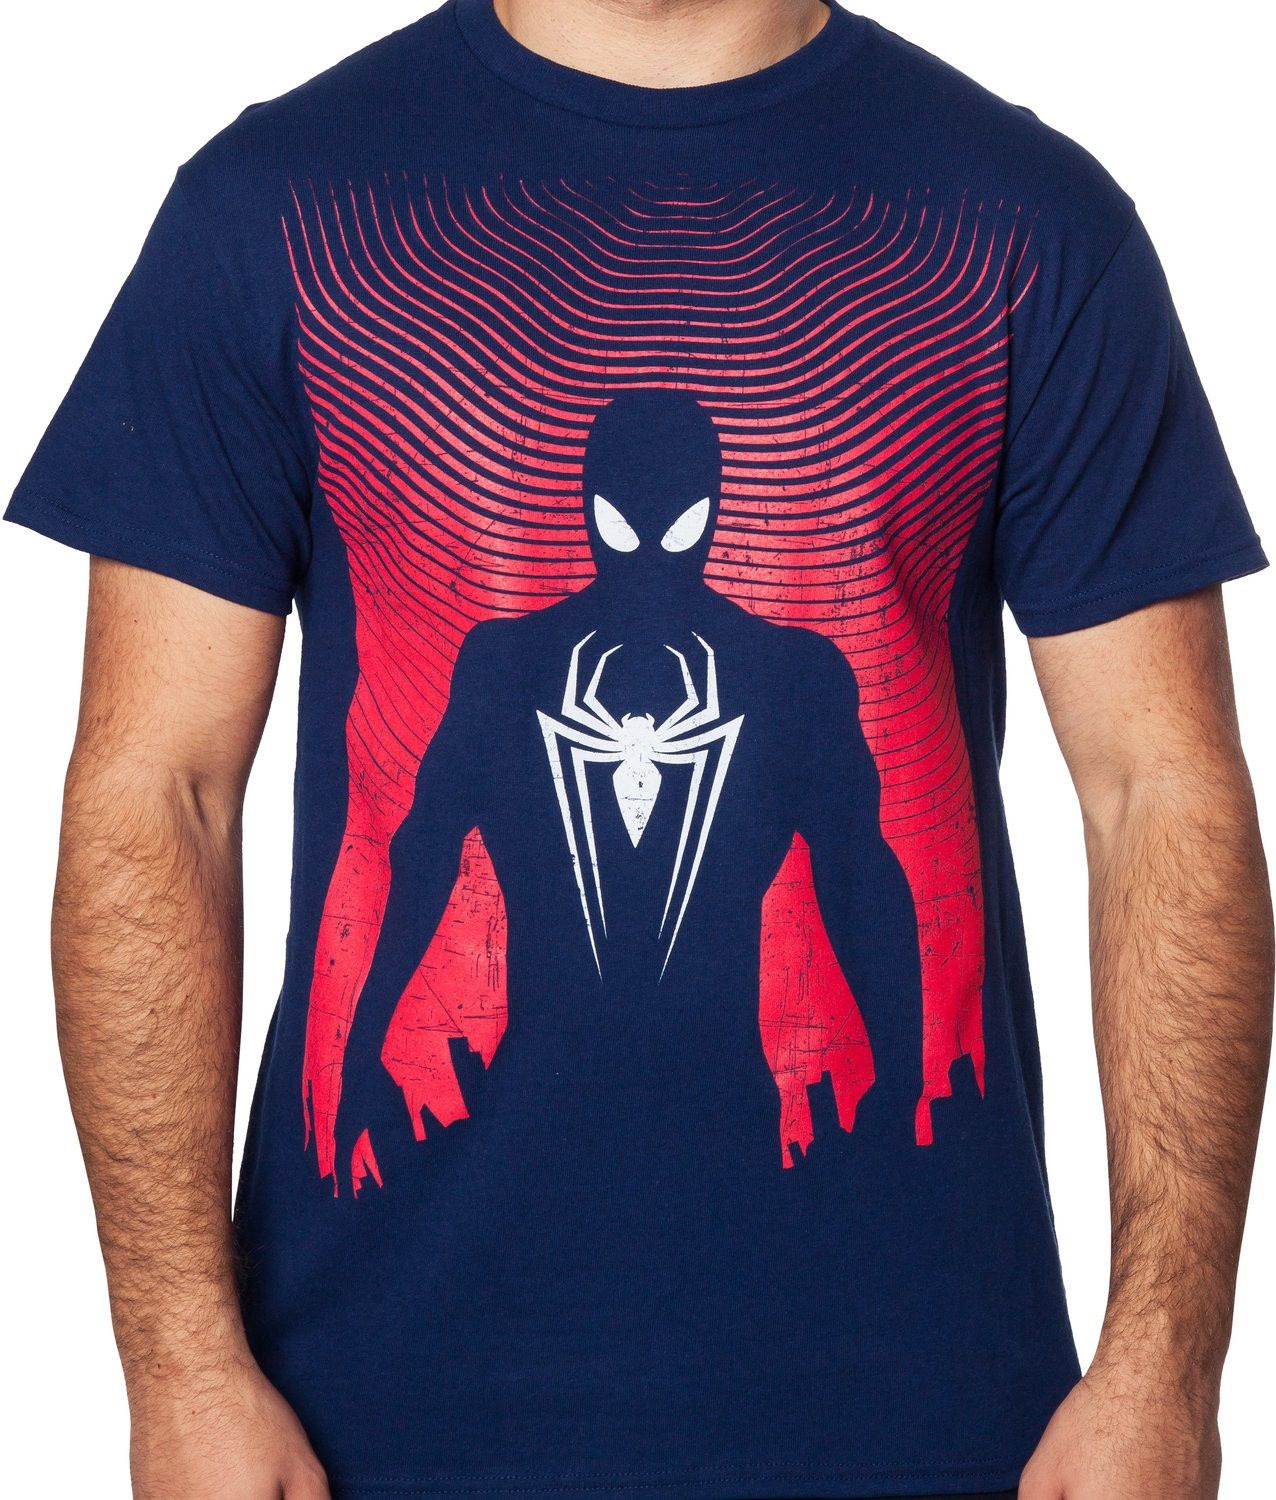 spider man shirts - Google Search